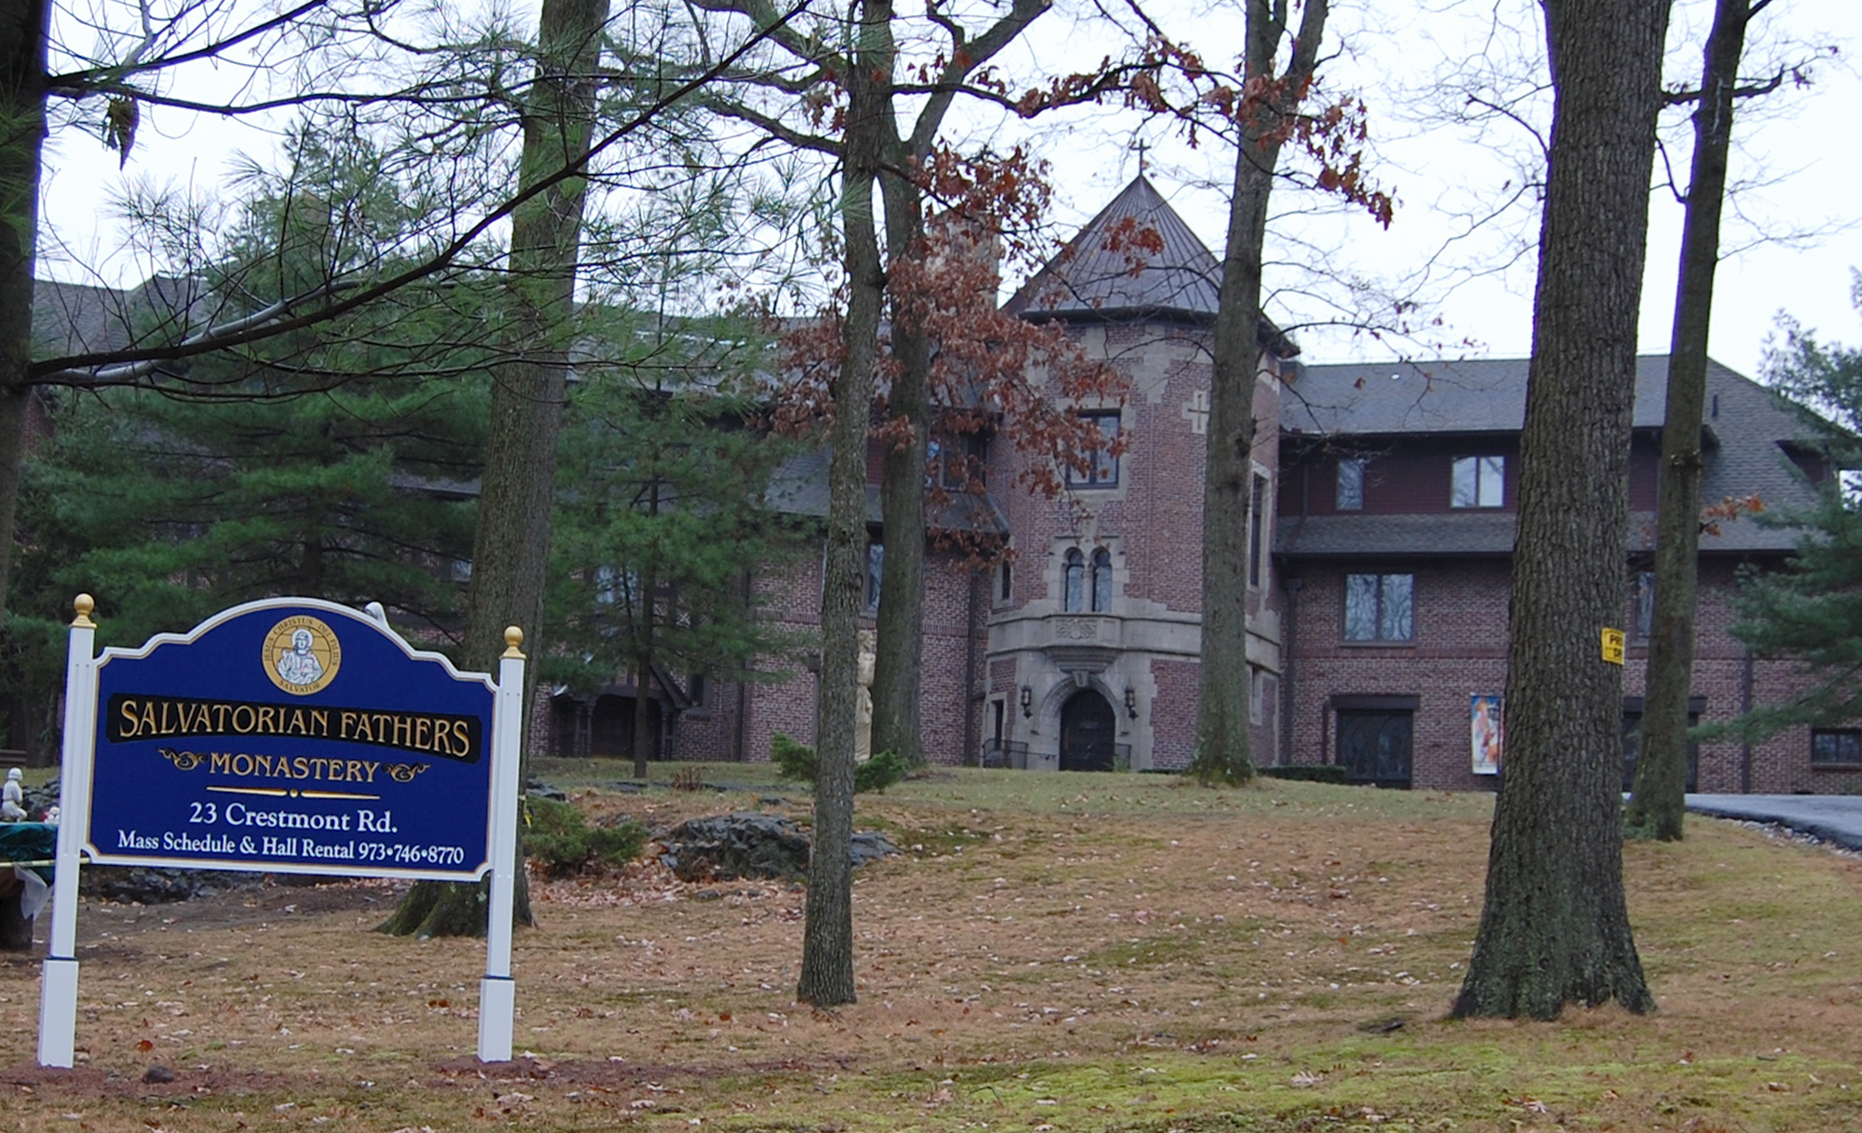 Salvatorian Fathers, New Jersey